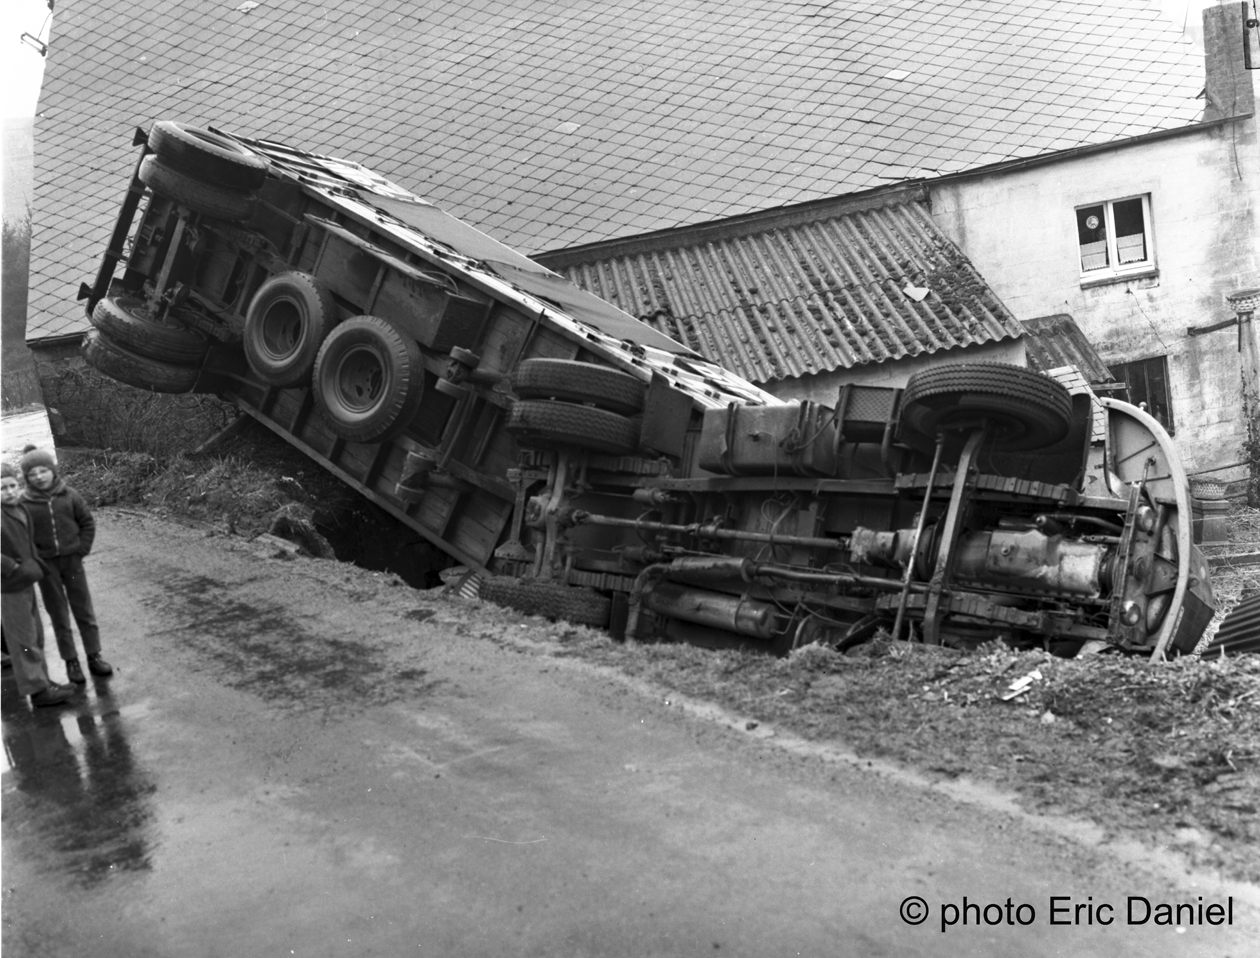 ACCIDENT CAMION © photo Eric Daniel